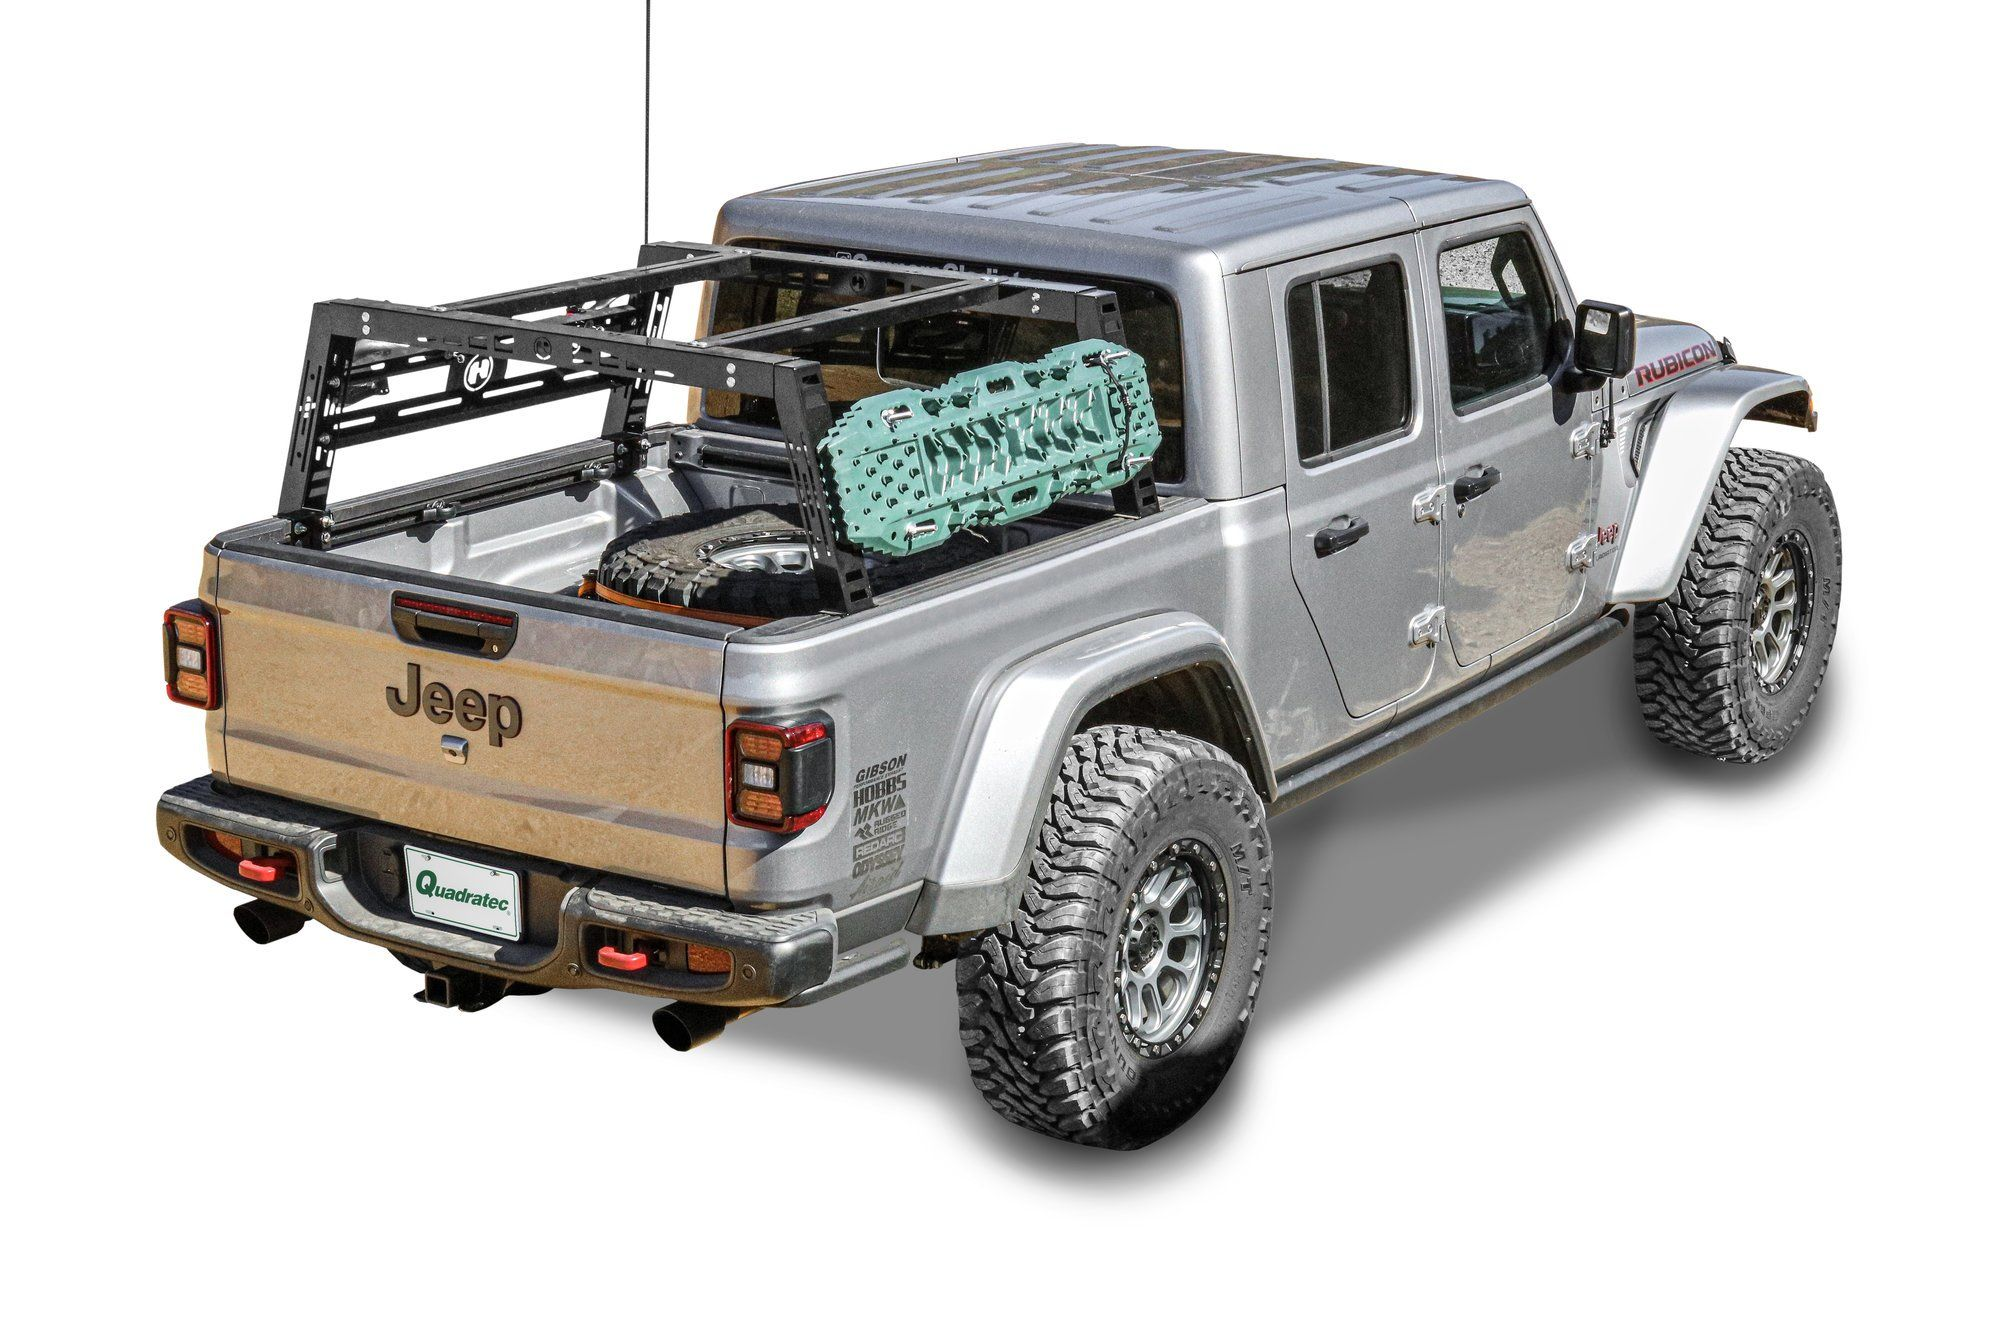 Hobbs 6700 020 Freedom Bed Rack For 2020 Jeep Gladiator Jt In 2020